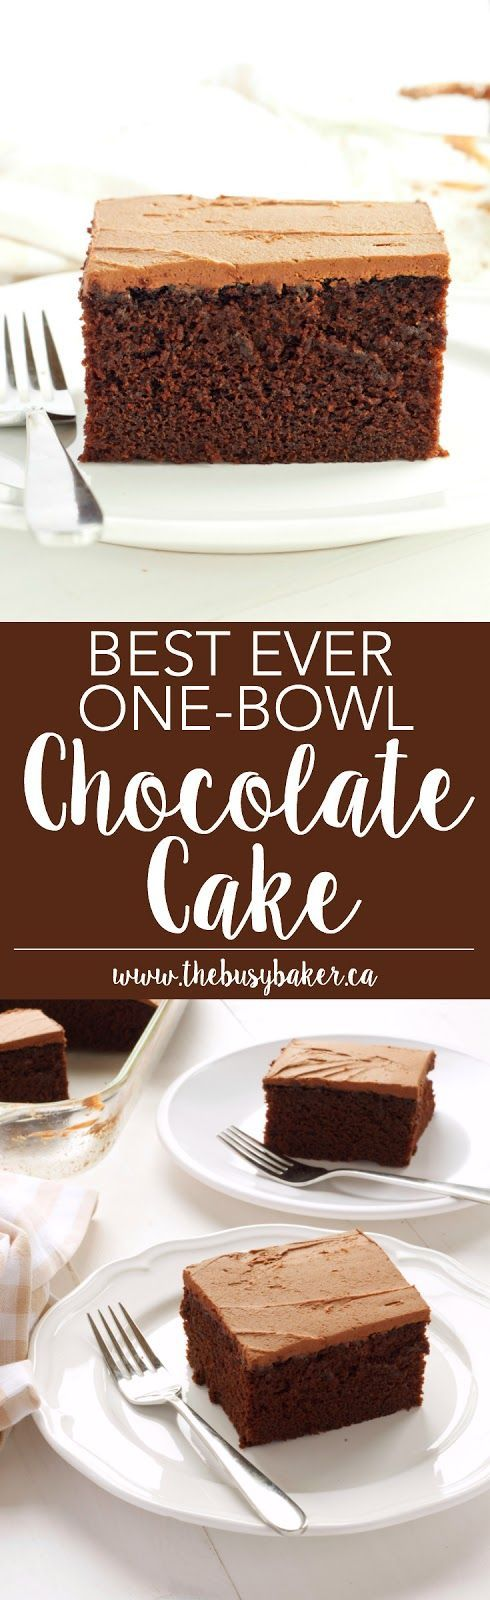 This Best Ever One Bowl Chocolate Cake is a must-have recipe! from www.thebusybaker.ca